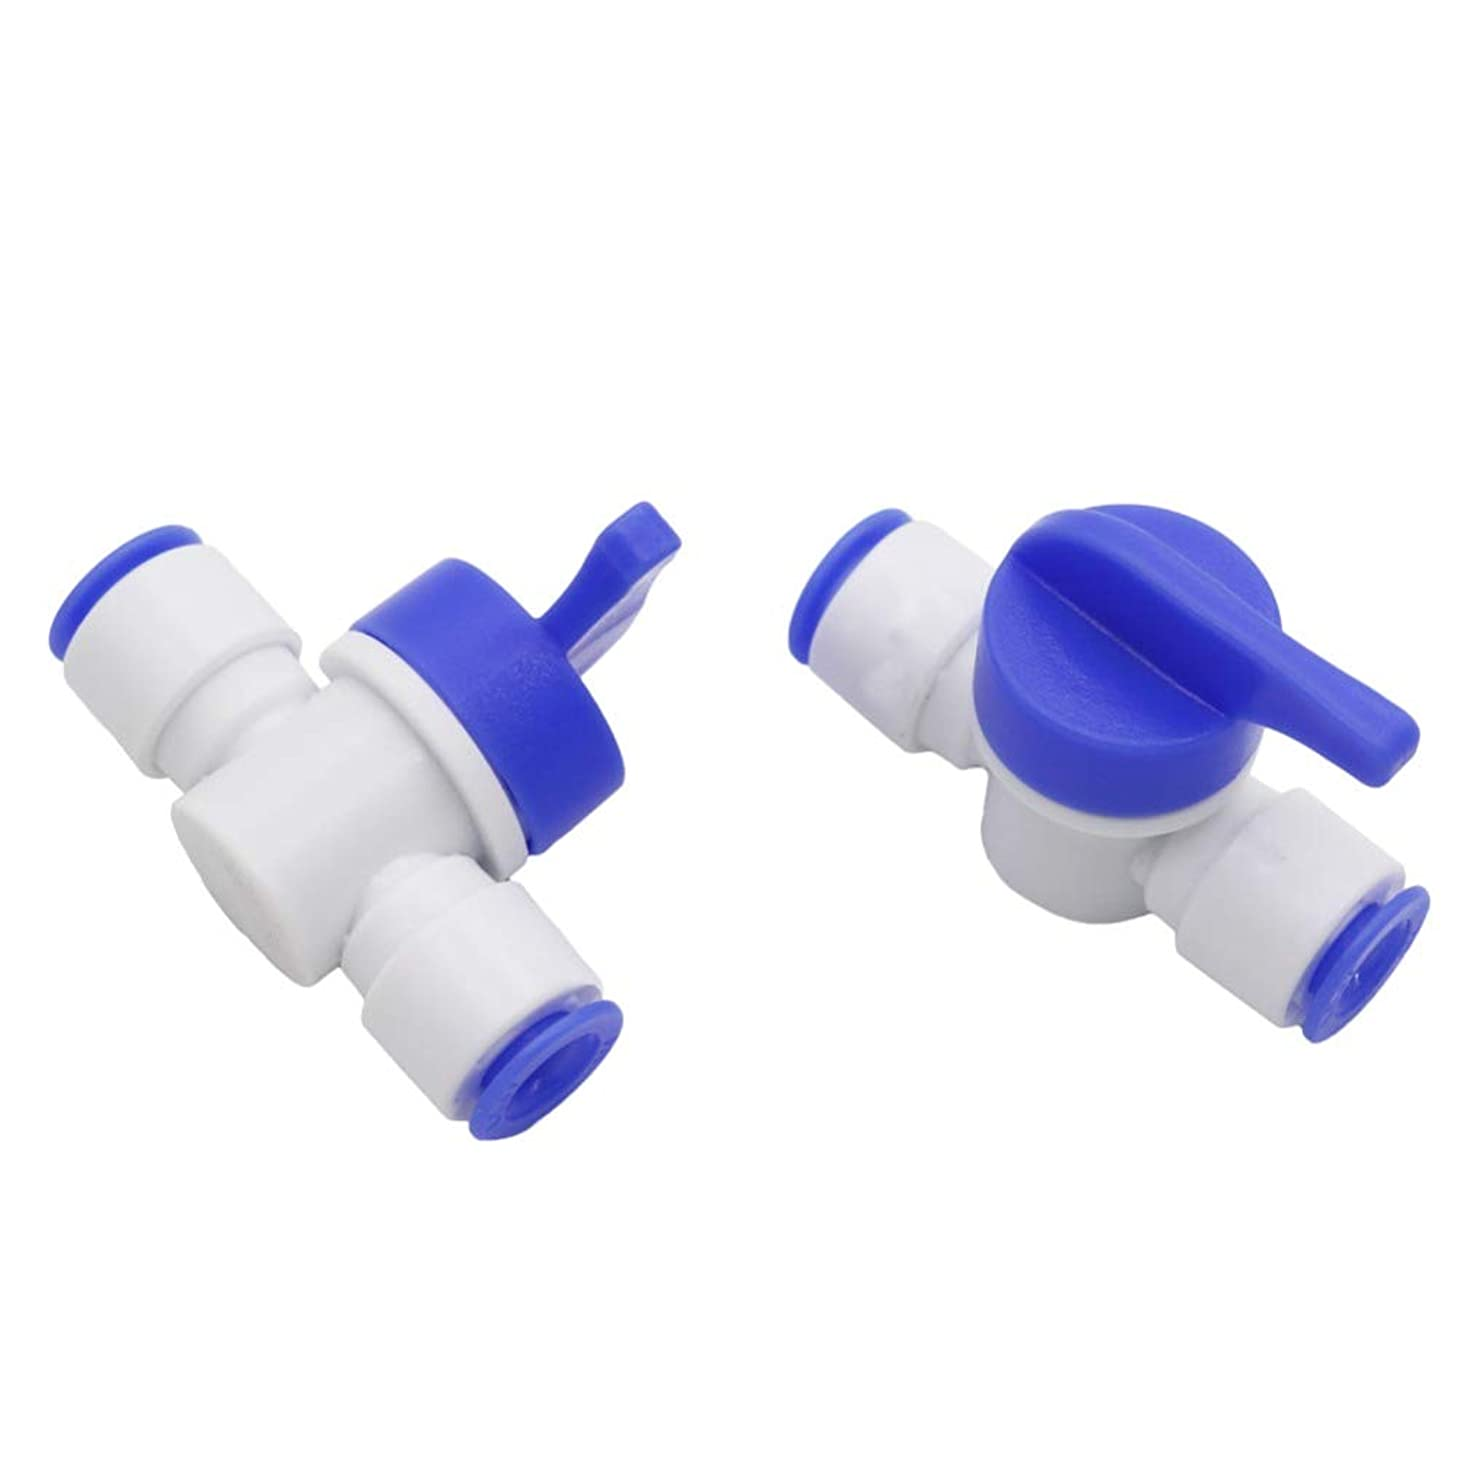 Slip Lock Quick-Connect   Ball Valve Pneumatic Pipe Connectors Fittings   Garden Irrigation Hose (4 Pcs, 1/4 Inch)